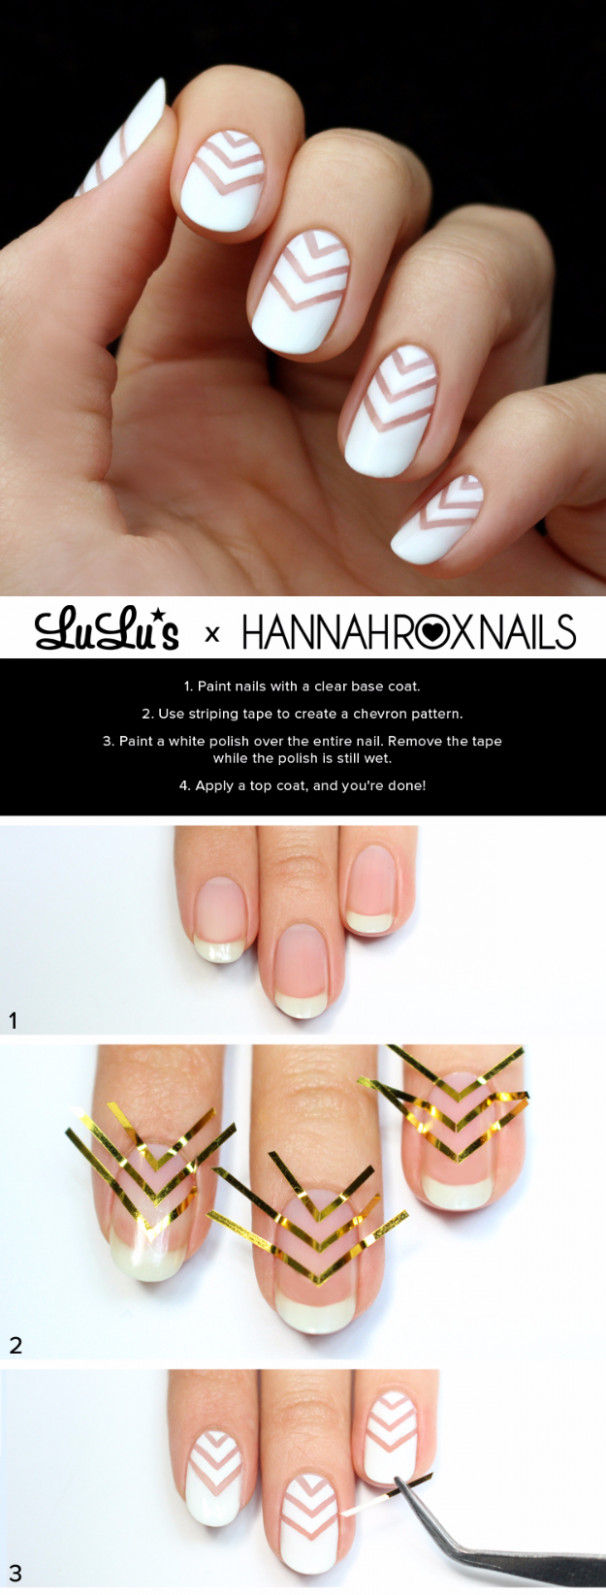 8 Brilliantly Creative Nail Art Patterns - DIY Projects for Teens